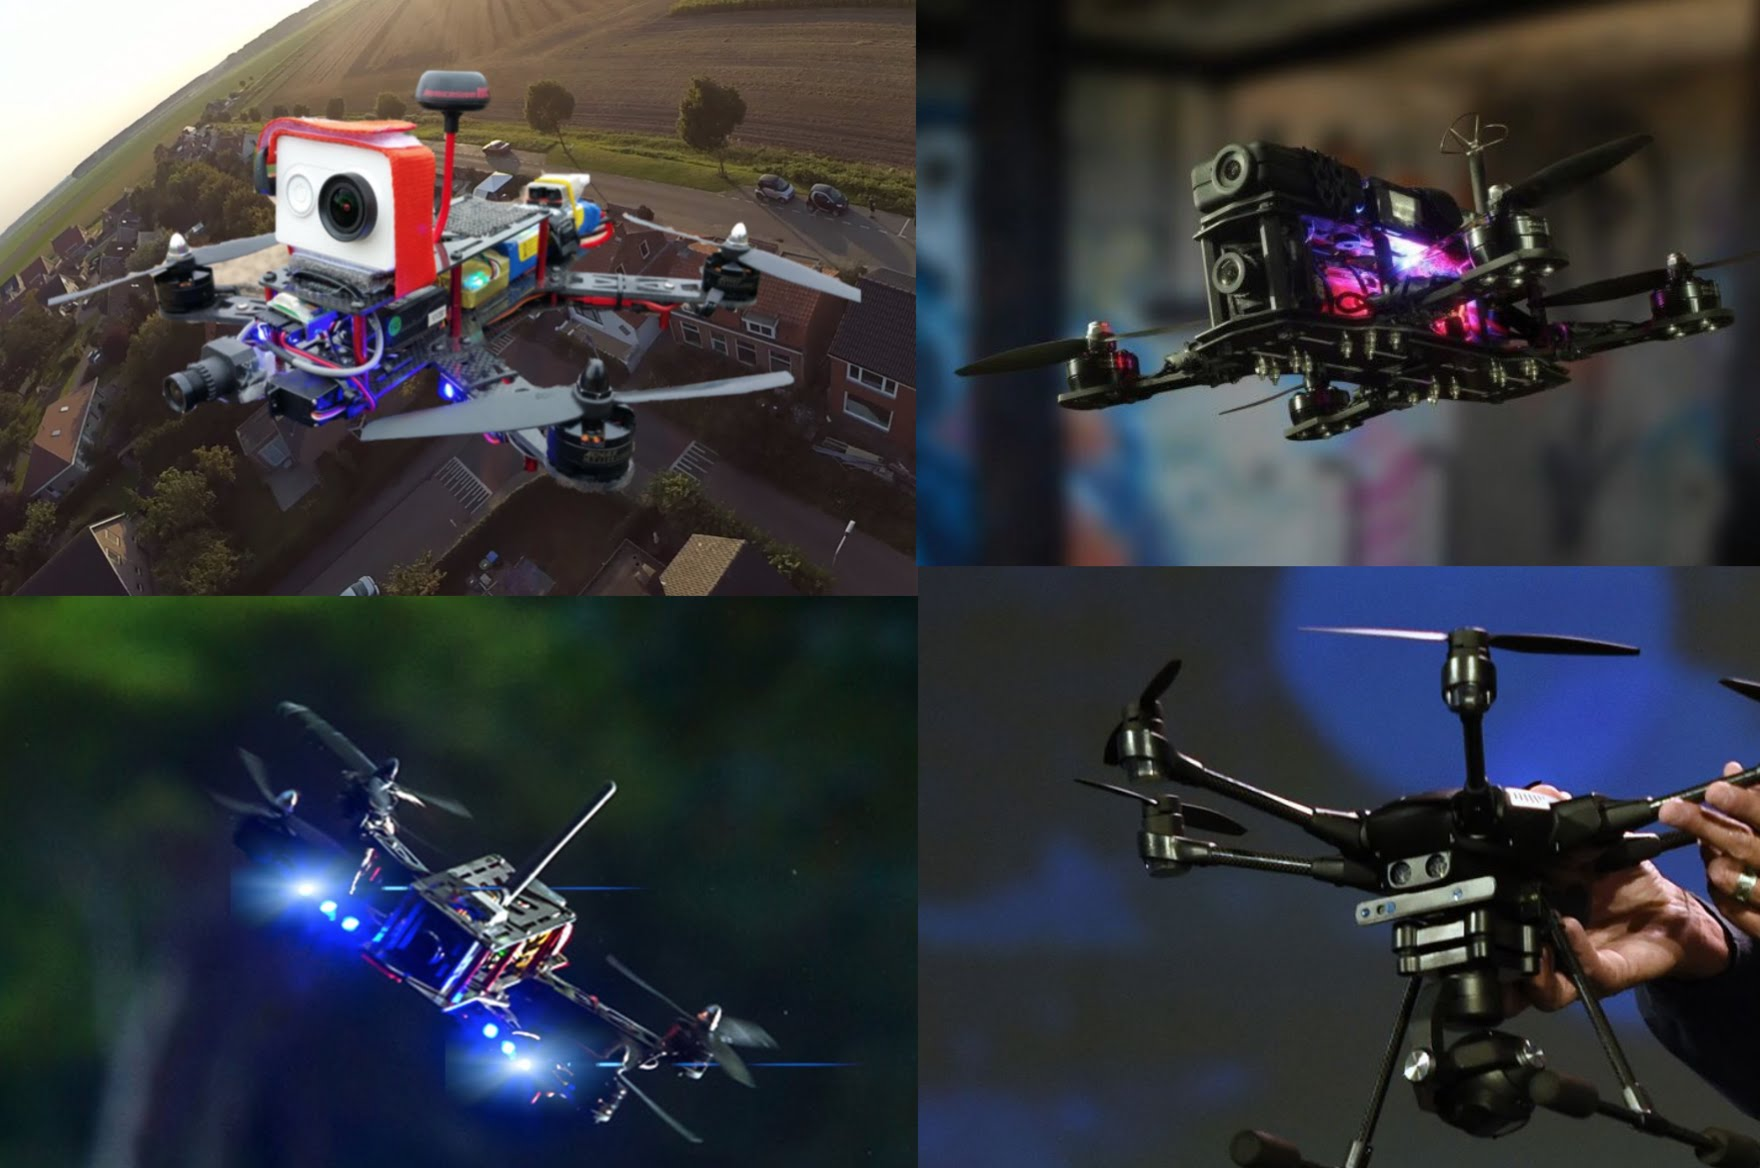 Sport of Future - Drone Racing League, Credit: YouTube